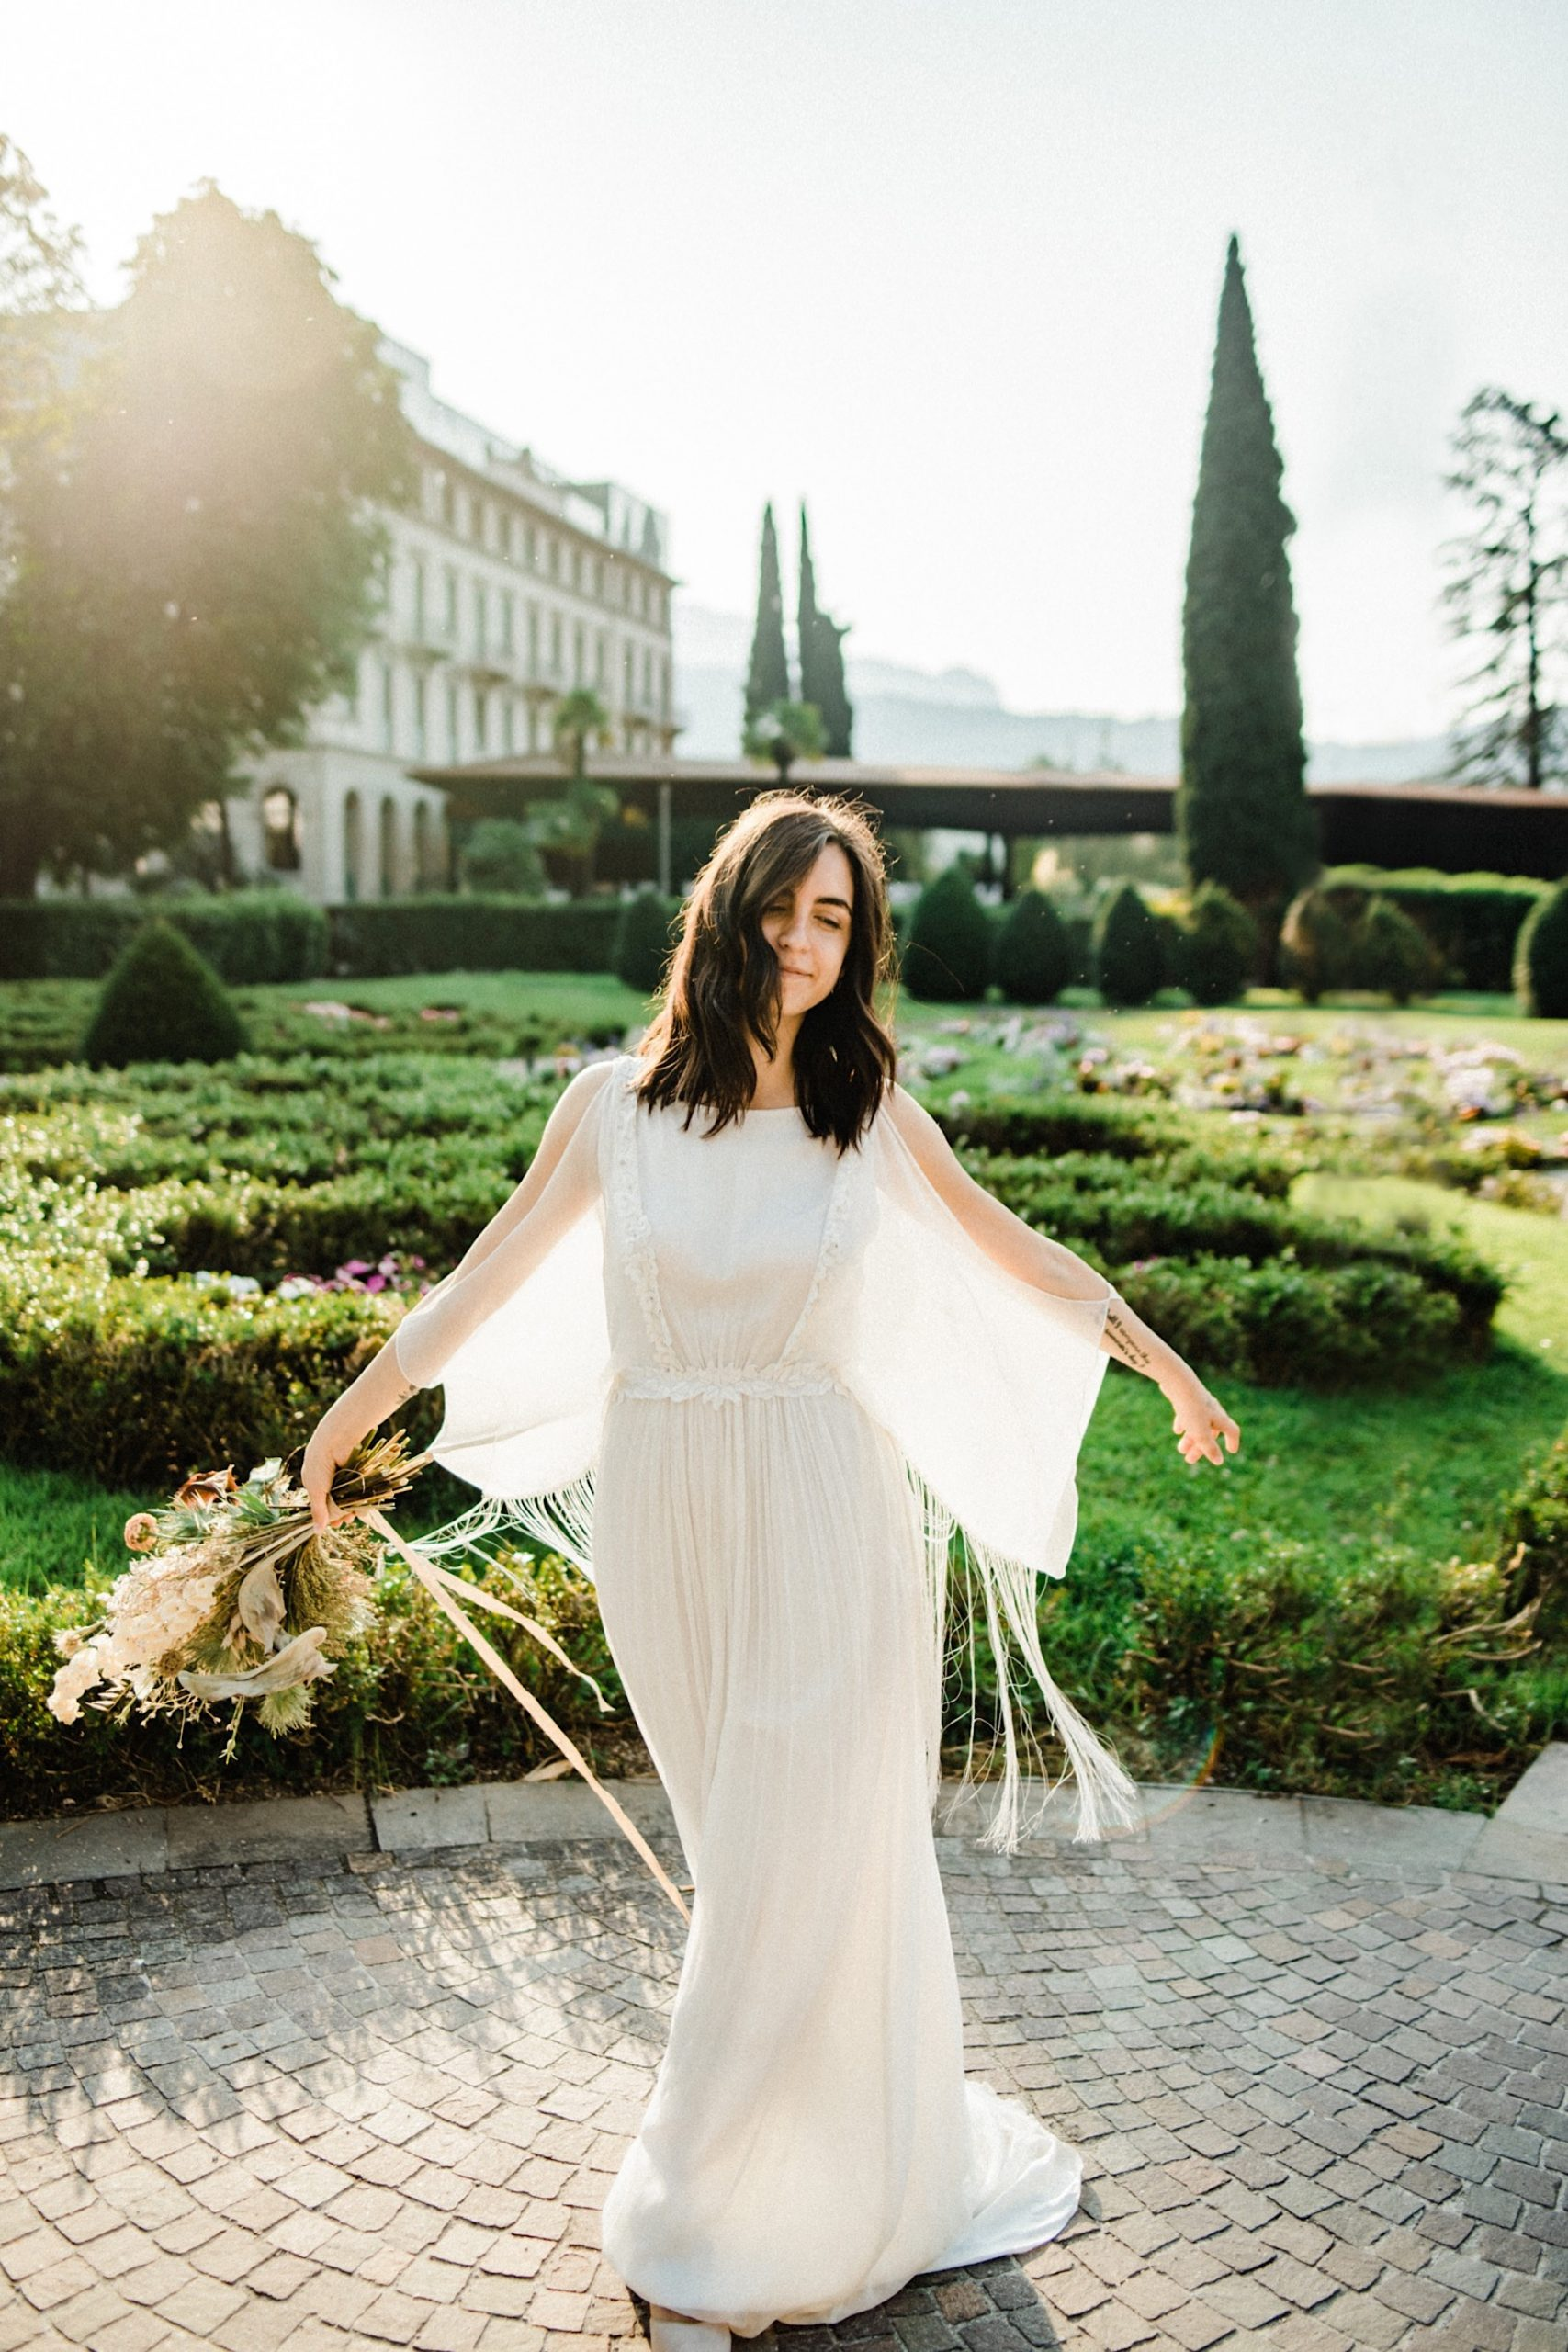 Italian Elopement Photography of a bride twirling around in front of some curated Italian gardens.